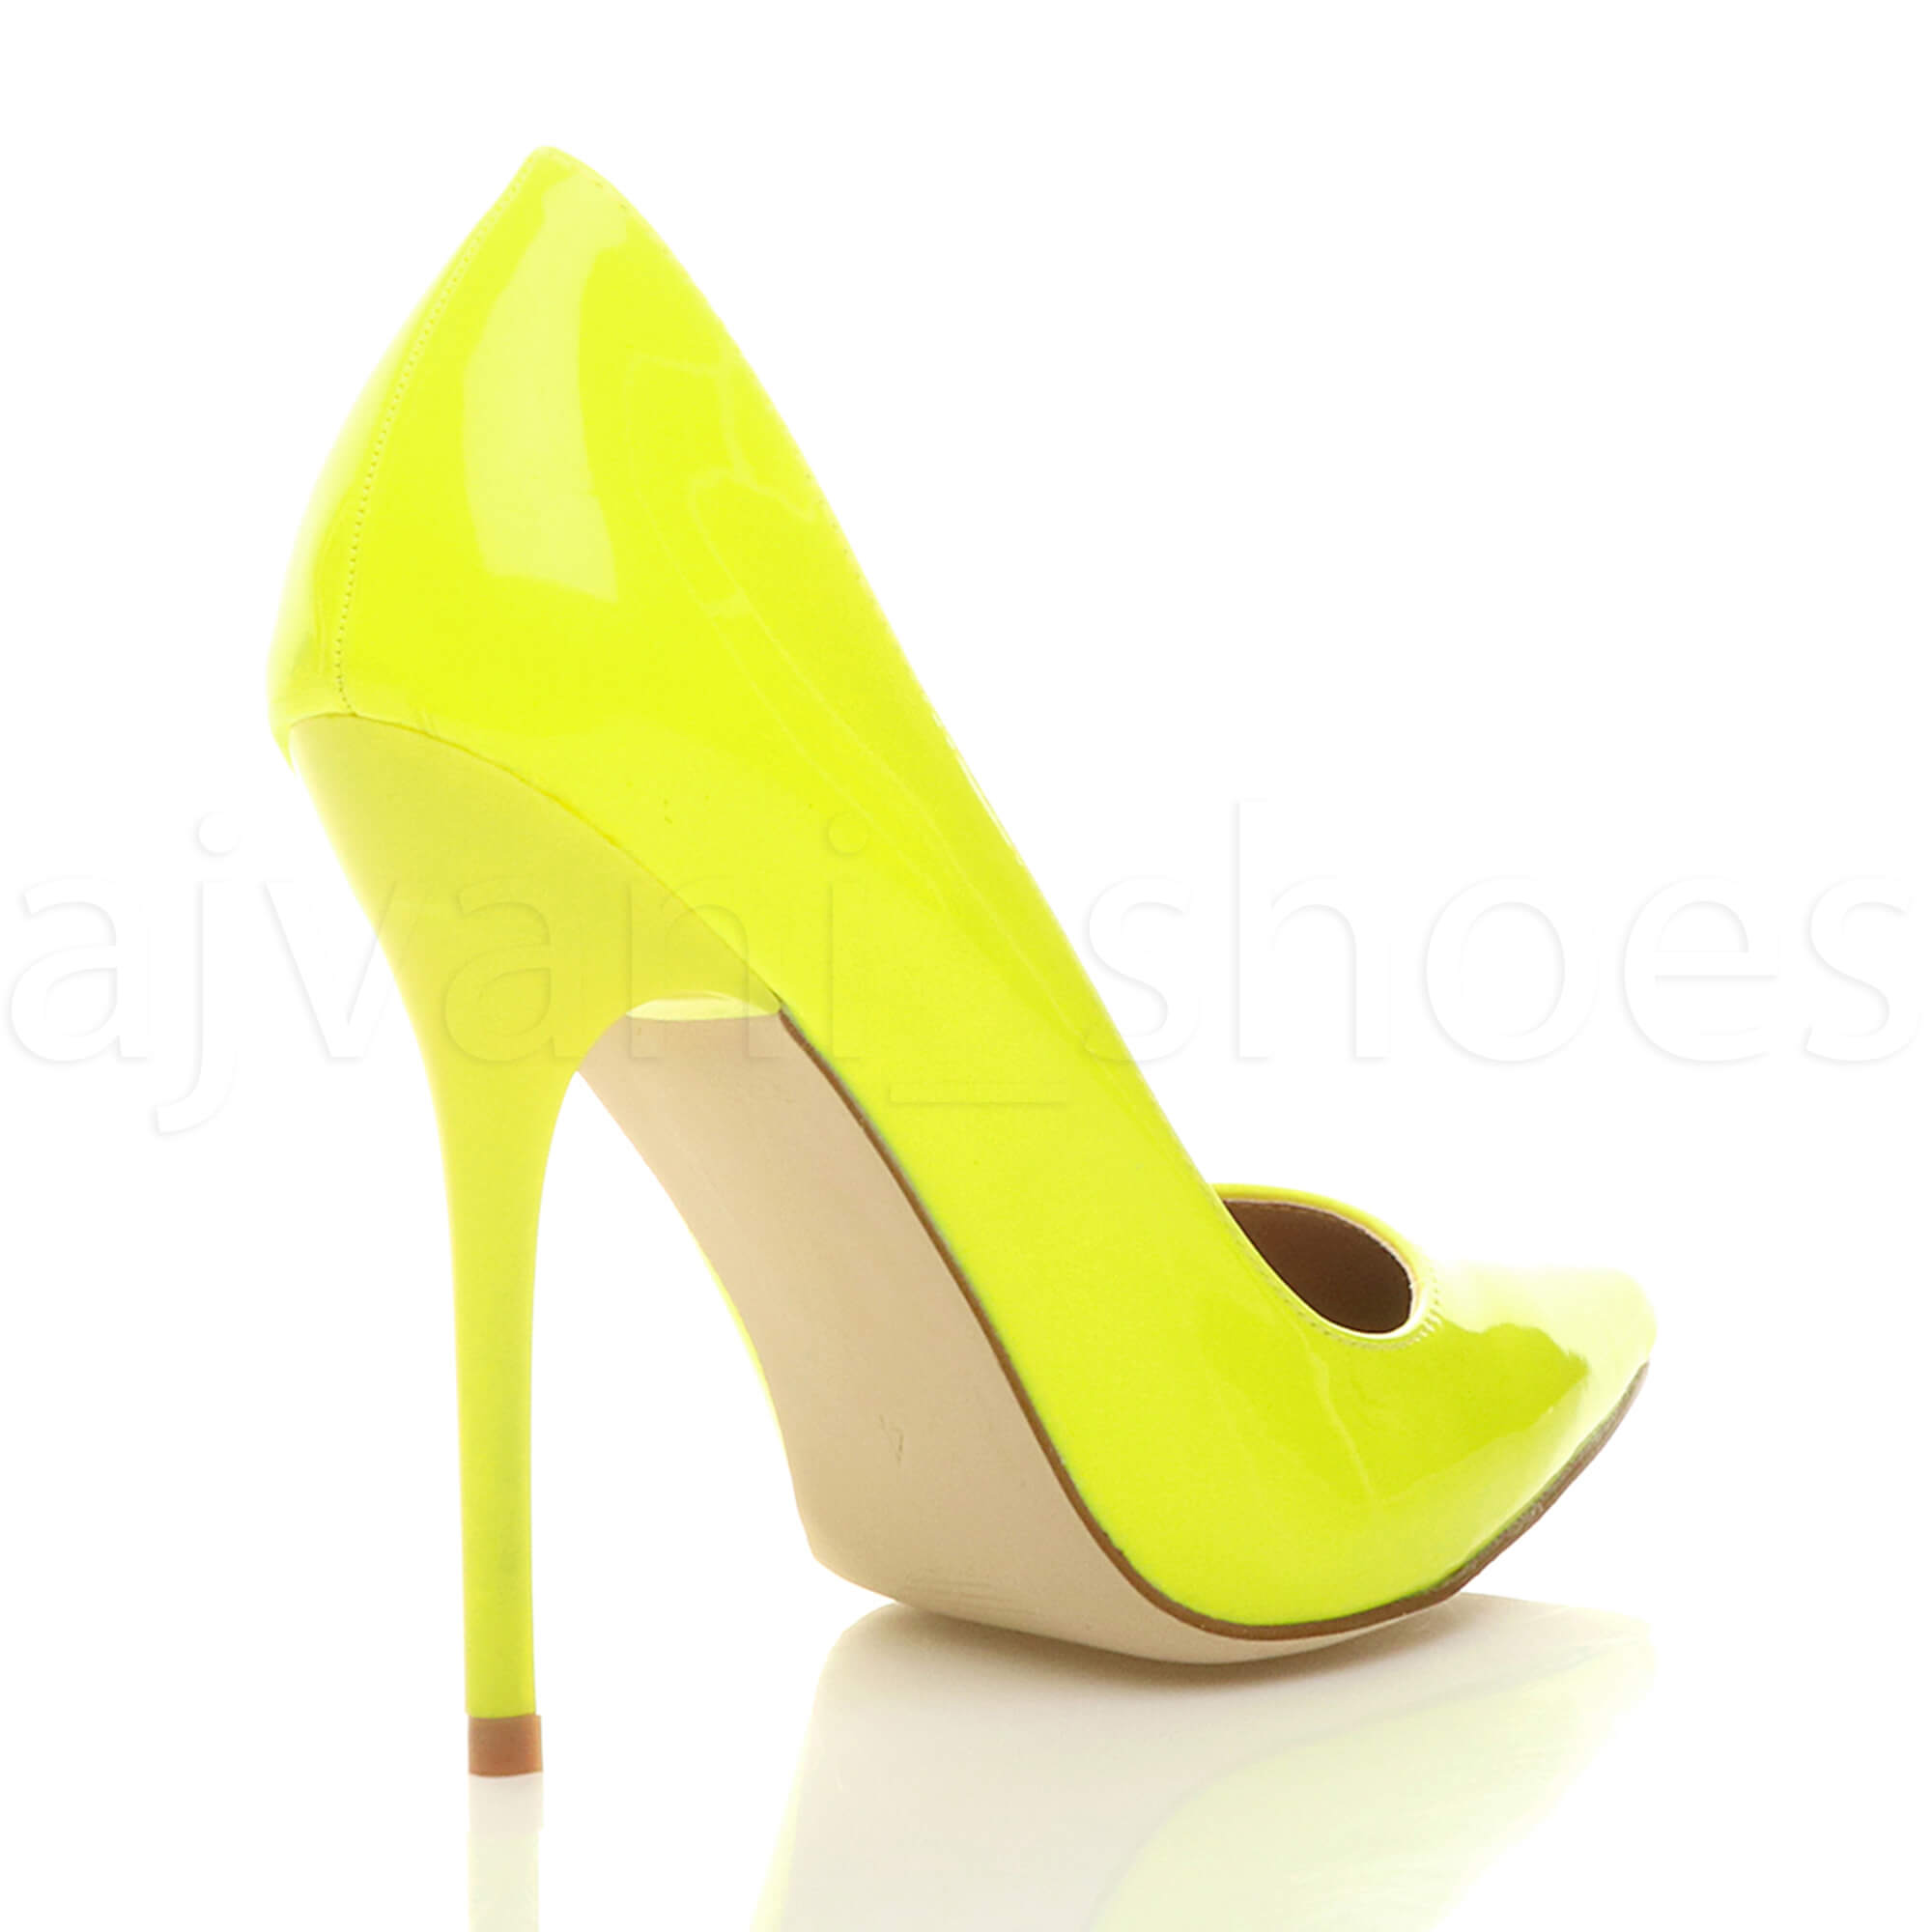 WOMENS-LADIES-HIGH-HEEL-POINTED-CONTRAST-COURT-SMART-PARTY-WORK-SHOES-PUMPS-SIZE thumbnail 115